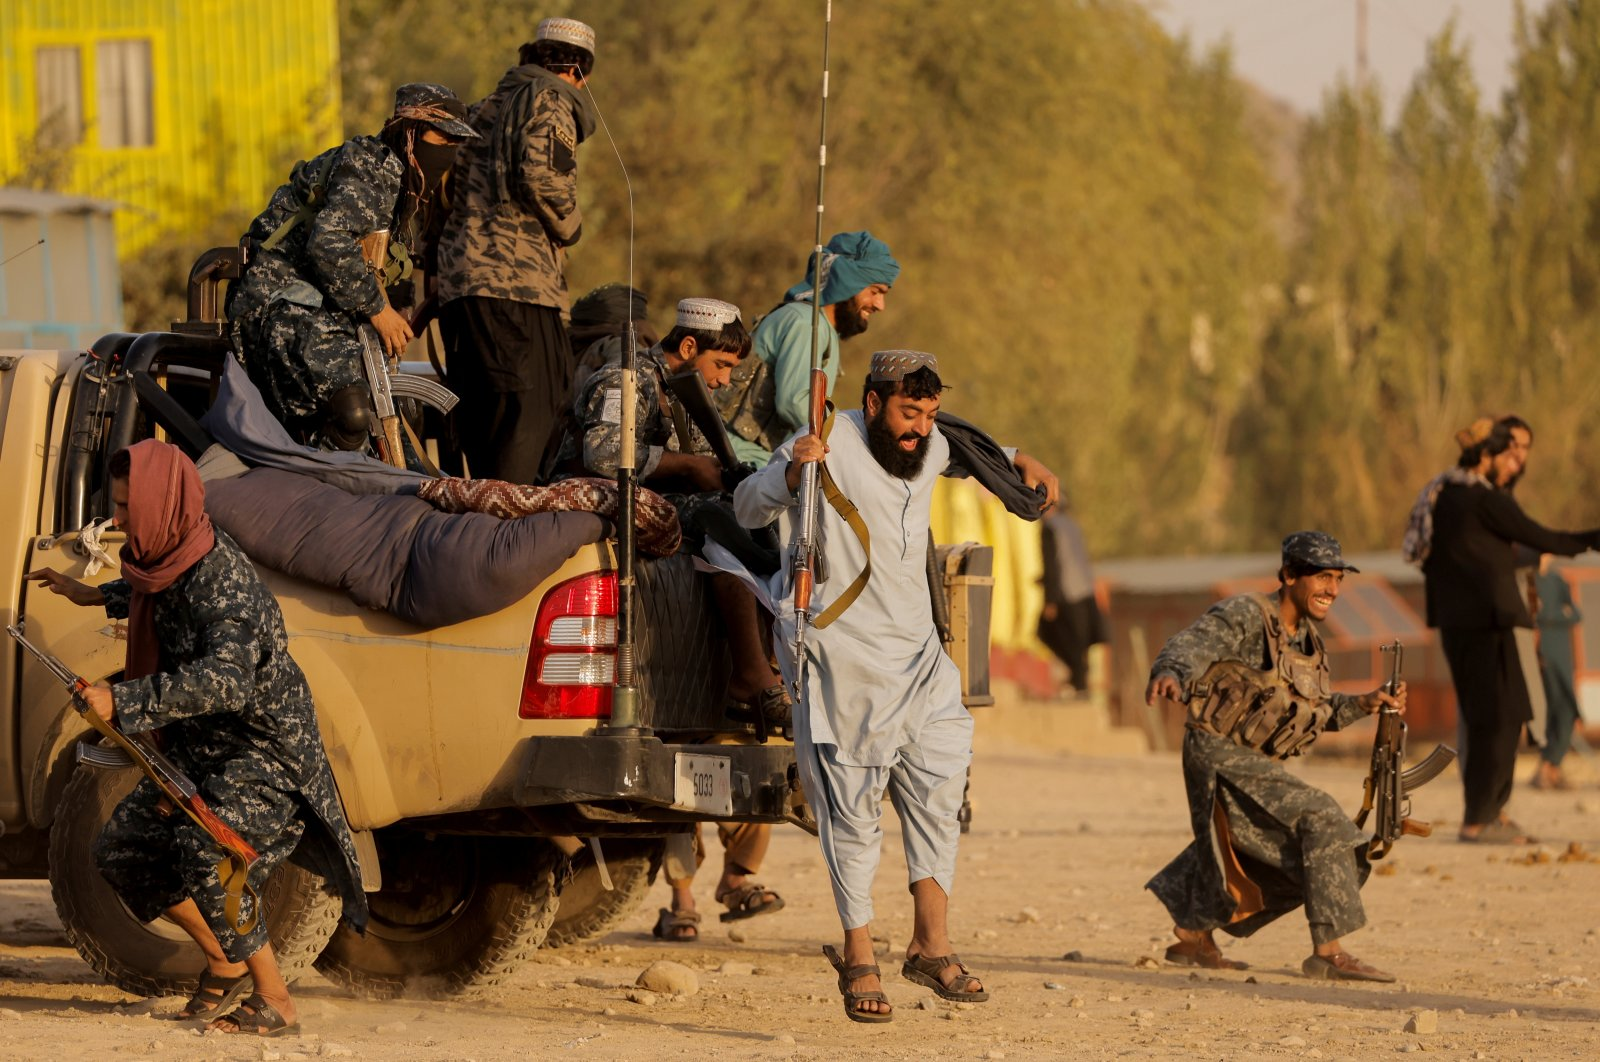 Taliban fighters get out of a vehicle as they take a day off to visit the amusement park at Kabul's Qargha reservoir, at the outskirts of Kabul, Afghanistan, Oct. 8, 2021. (Reuters File Photo)